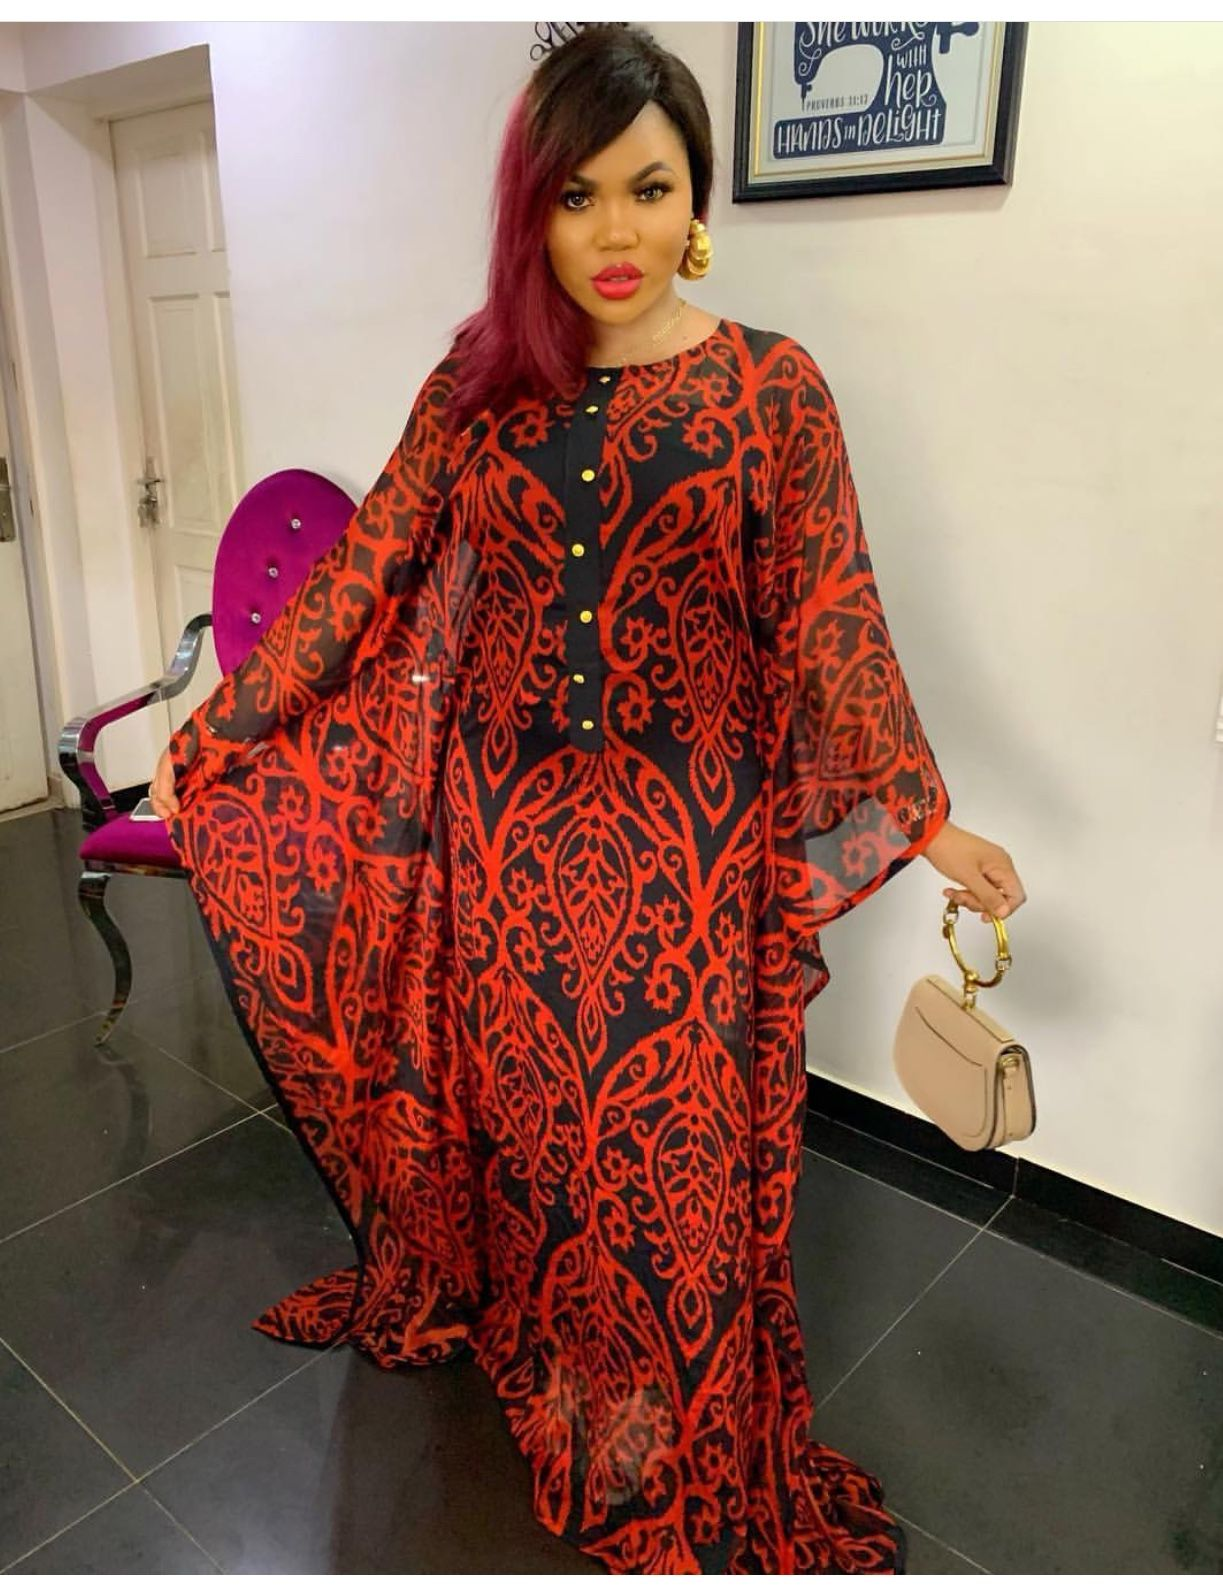 Pin By Hawa On Famille Hawa African Maxi Dresses African Fashion Women Clothing African Wear Dresses